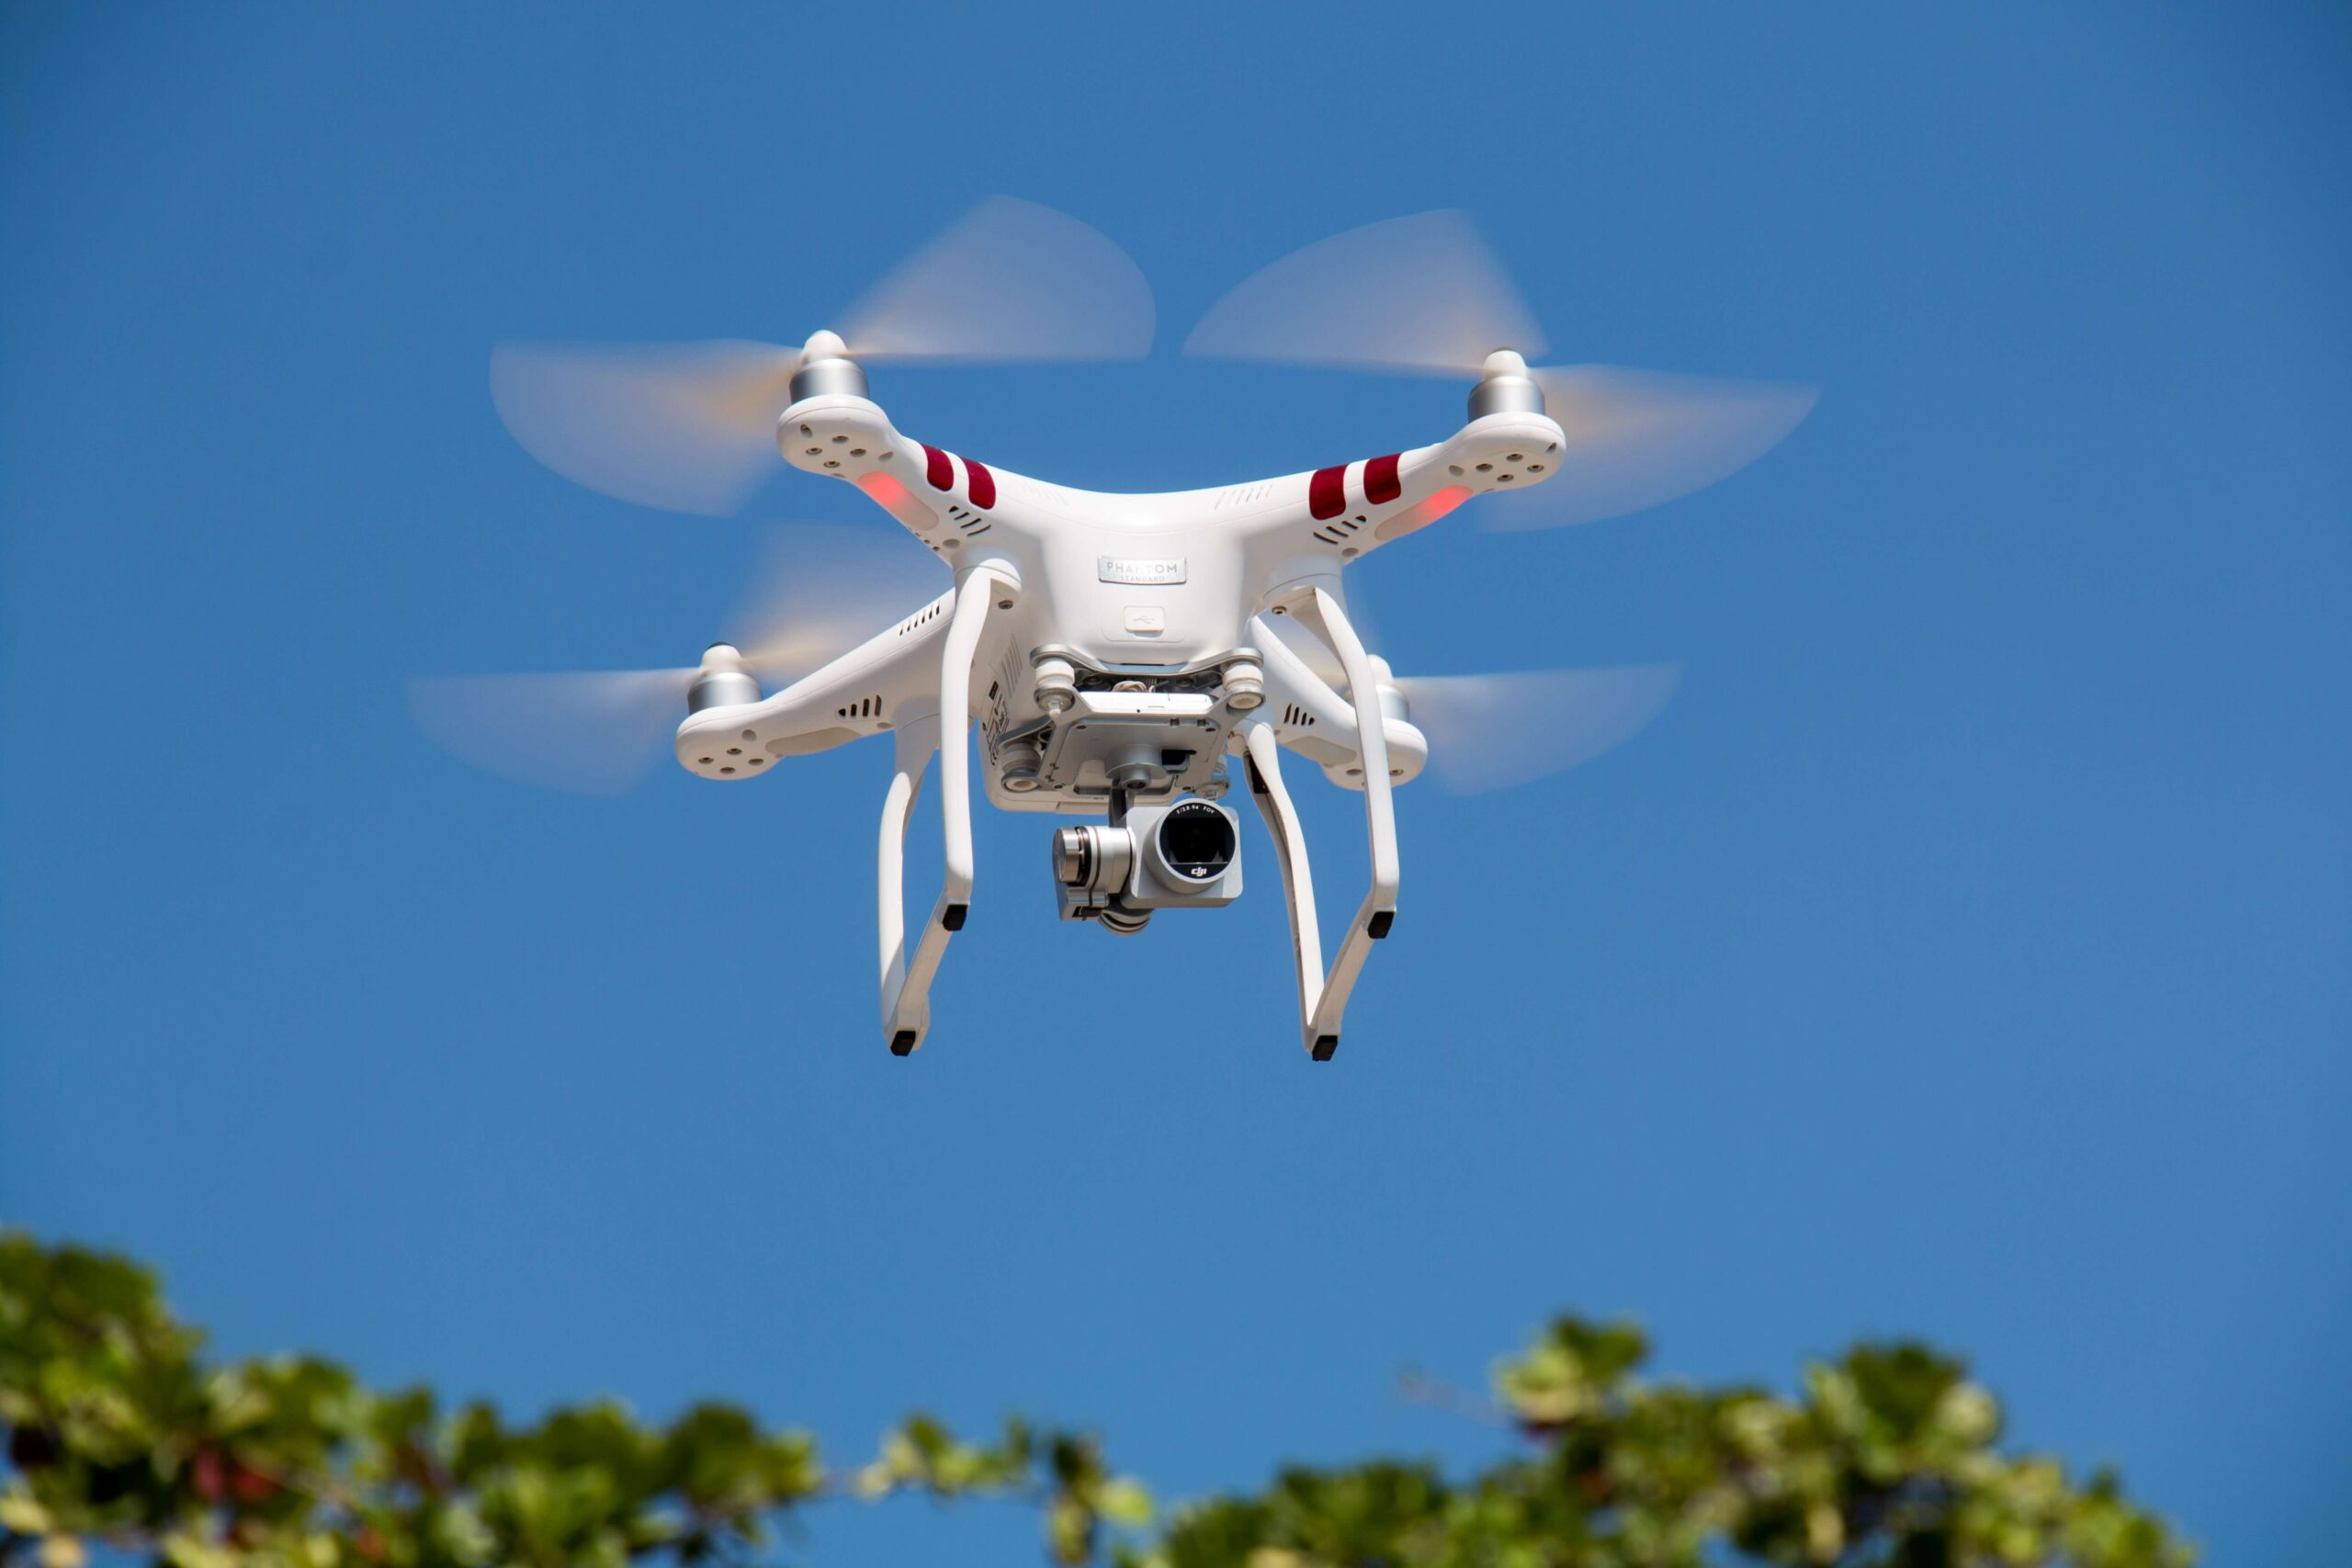 Image of an Emerging technology trend drone